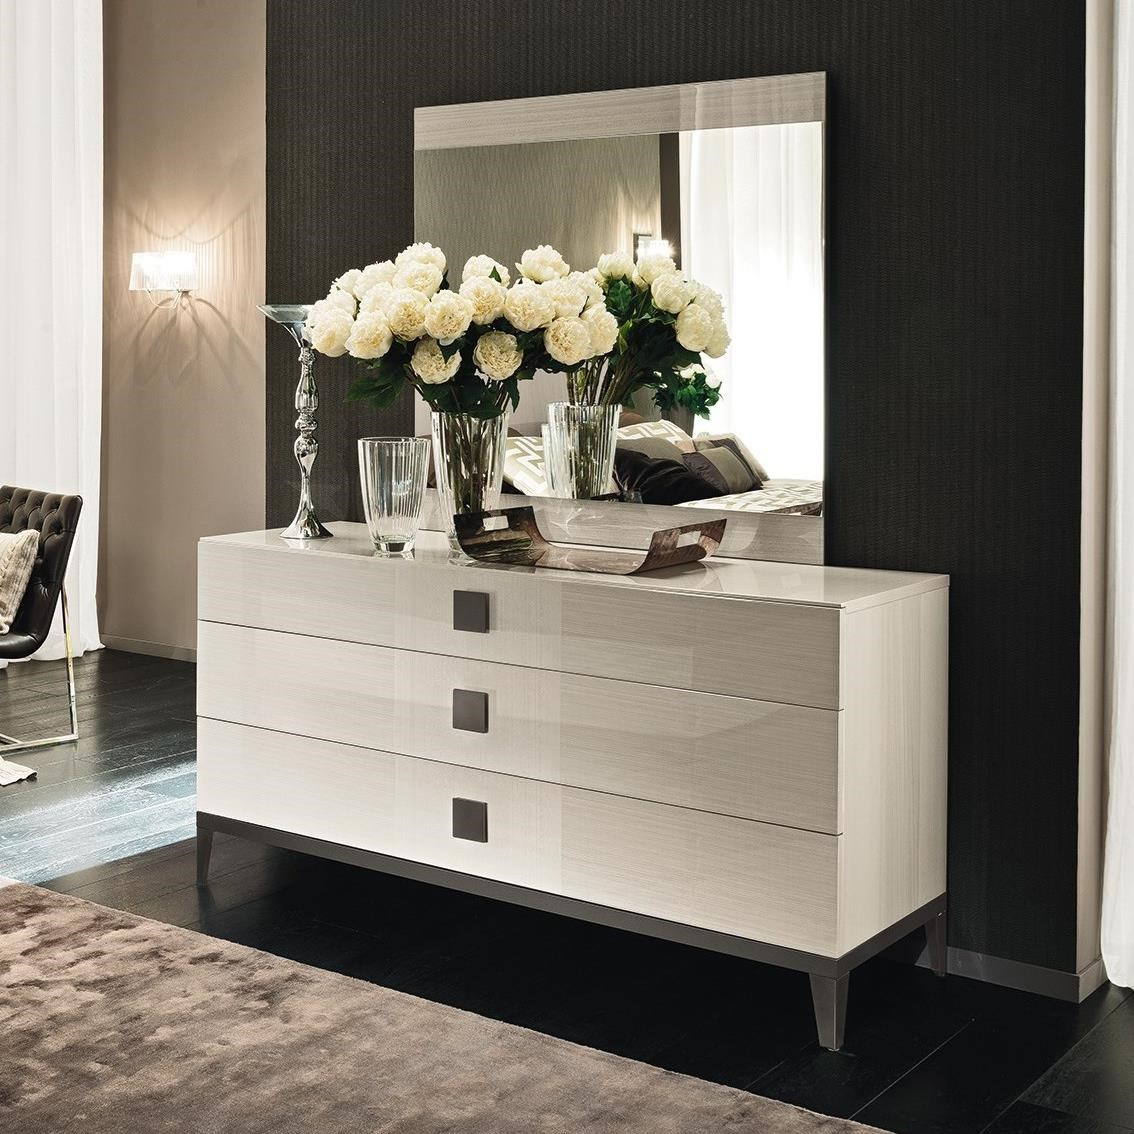 Mont Blanc 3 Drawer Dresser and Mirror by Alf Italia at Upper Room Home Furnishings